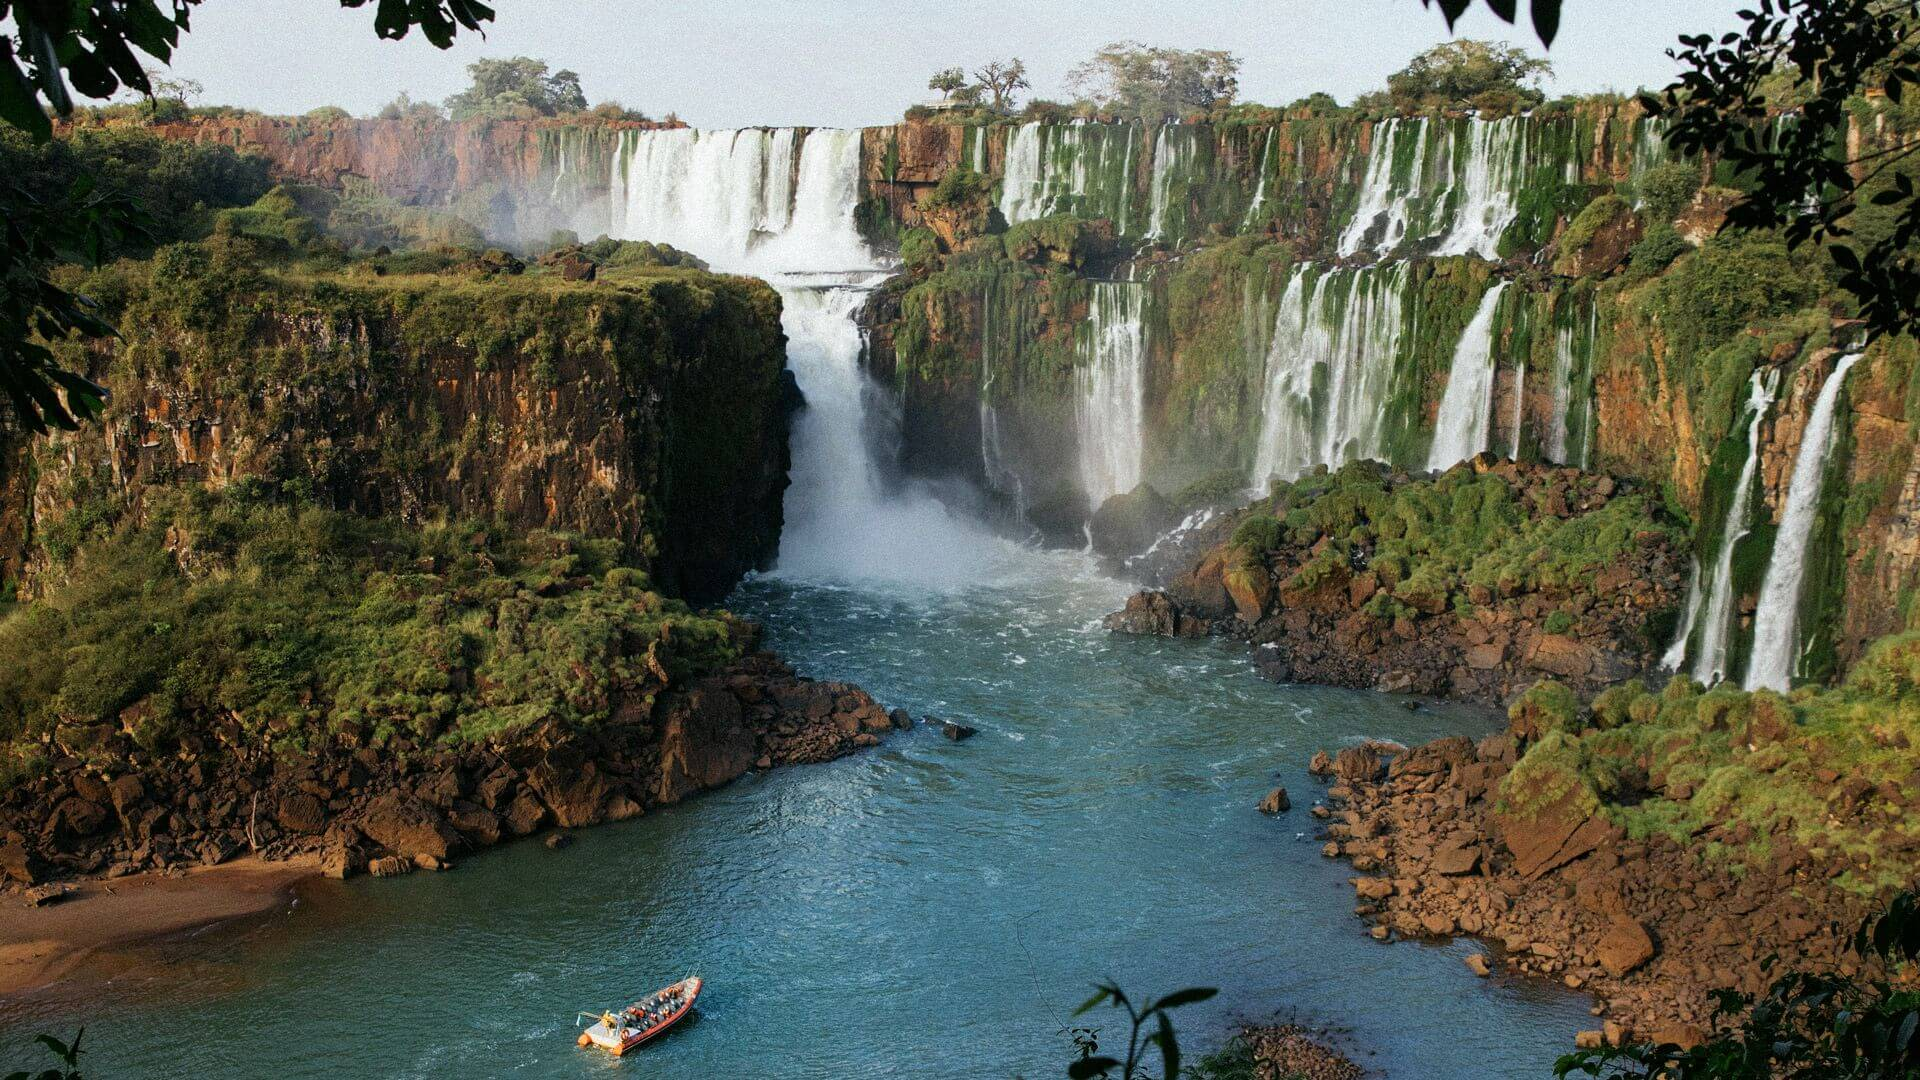 Travel to Iguazu, Misiones, Argentina